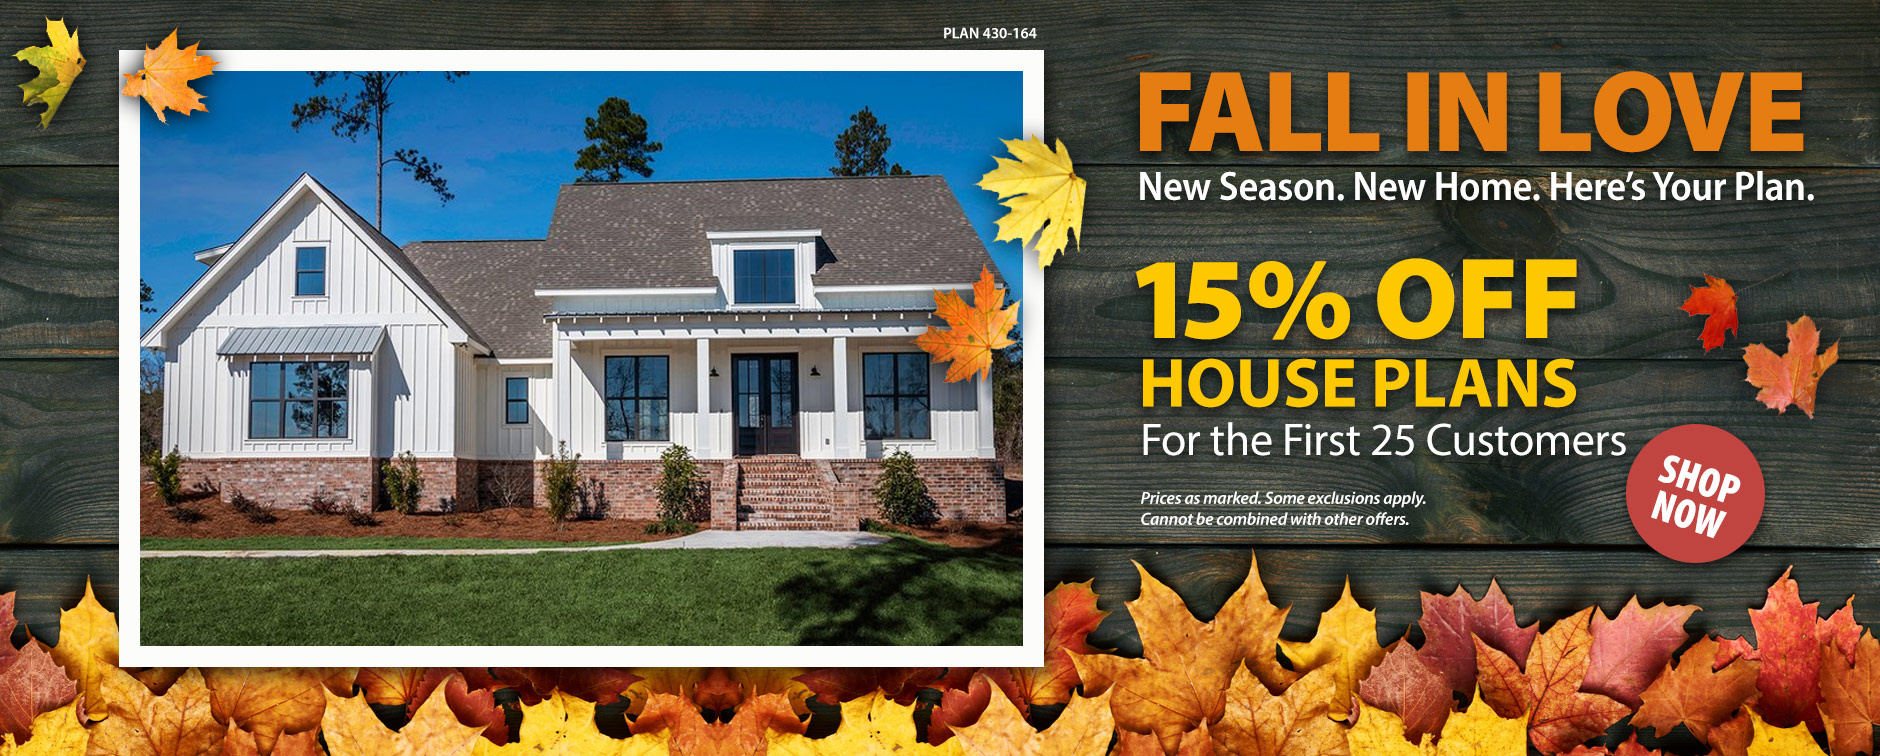 Take 15% Off House Plans Today for the First 25 Customers